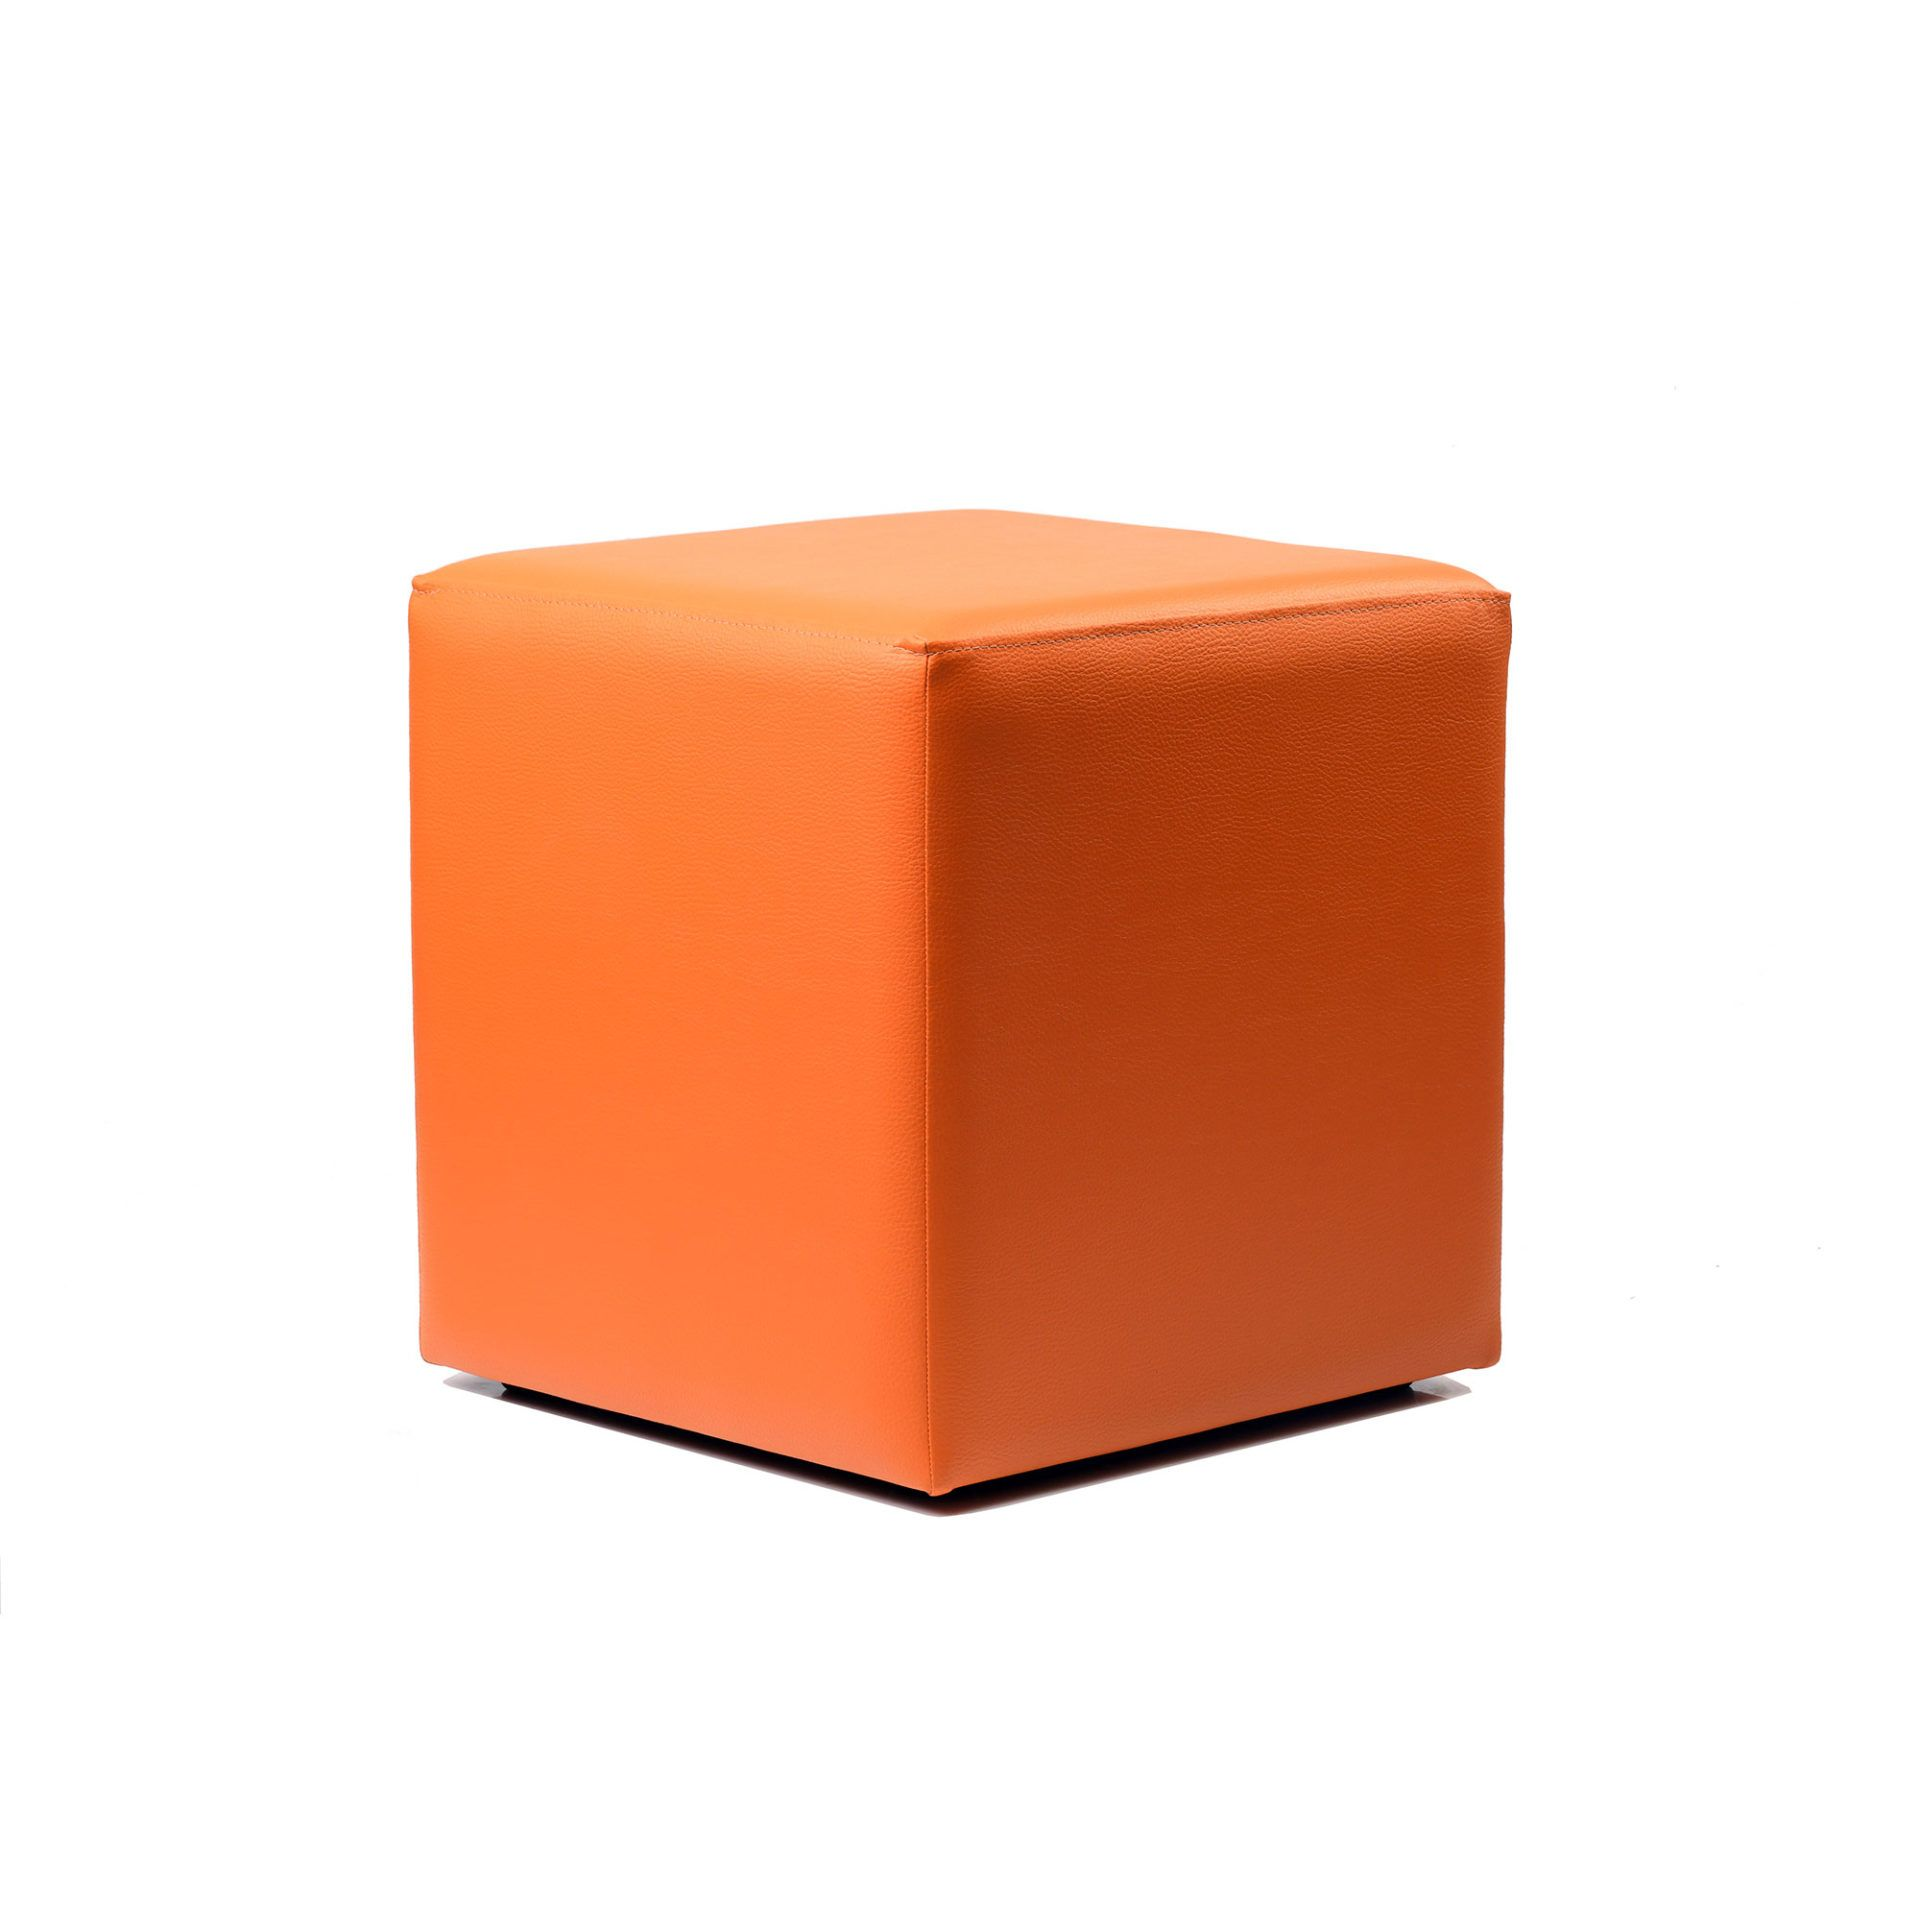 ottoman square orange02